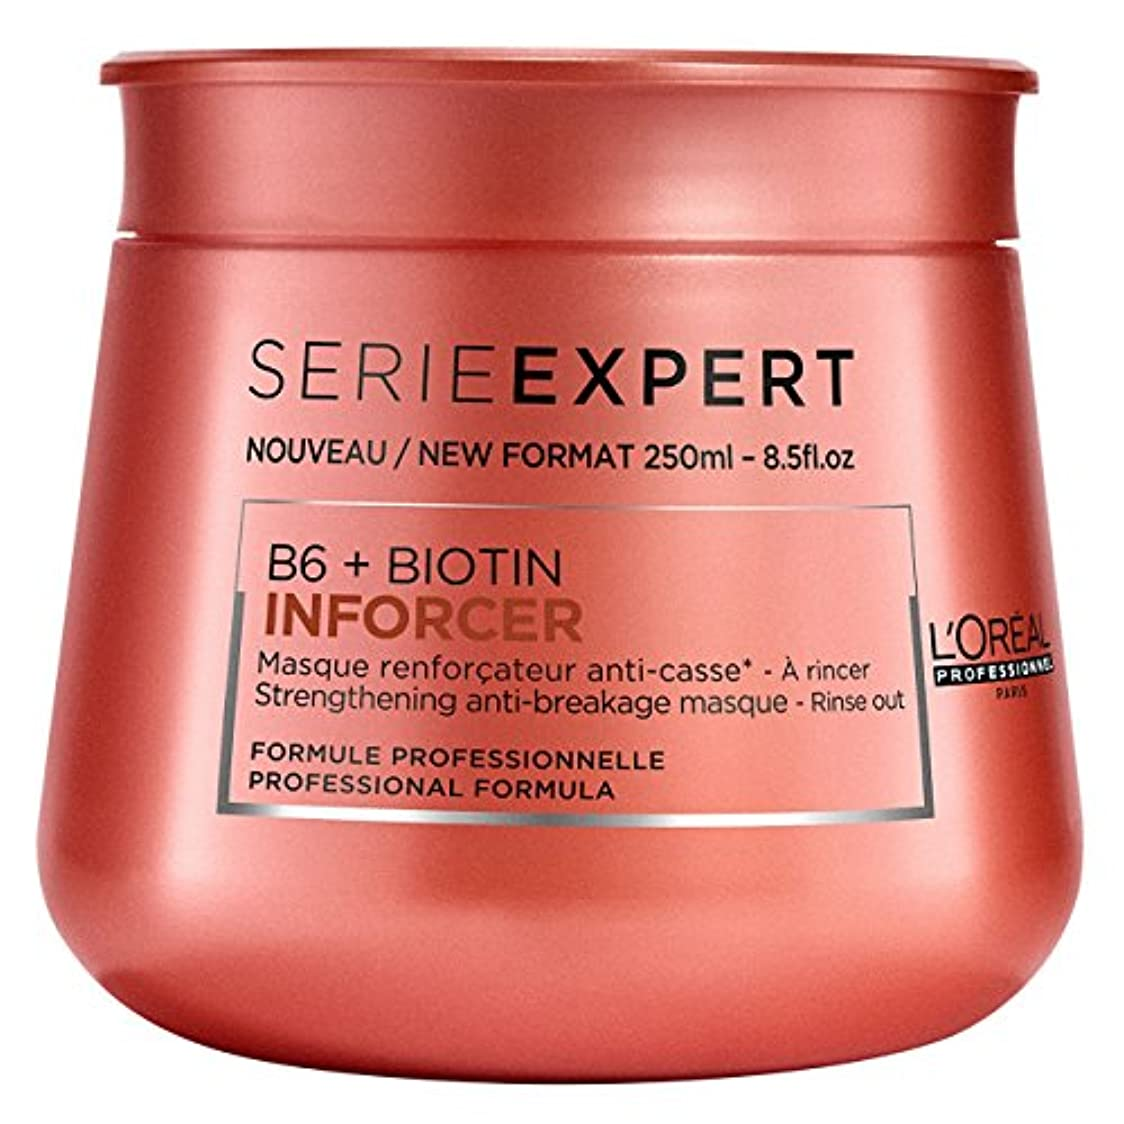 L'Oreal Serie Expert B6 + Biotin INFORCER Strengthening Anti-Breakage Masque 250 ml [並行輸入品]